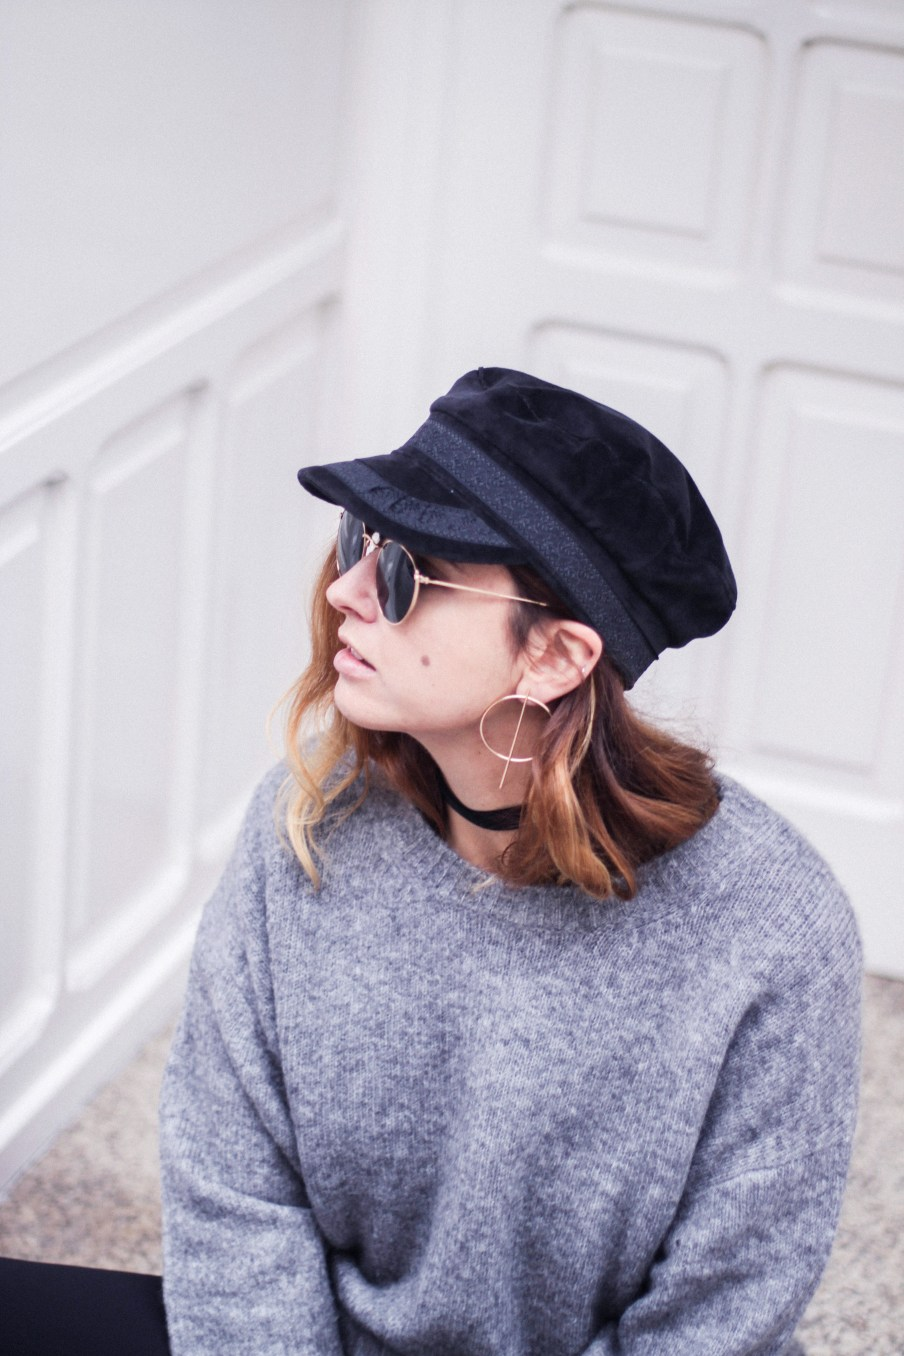 baker_boy_hat_flared_pants_vans_oversize_knit_fall_2016_trends_street_style_outfits_donkeycool-35